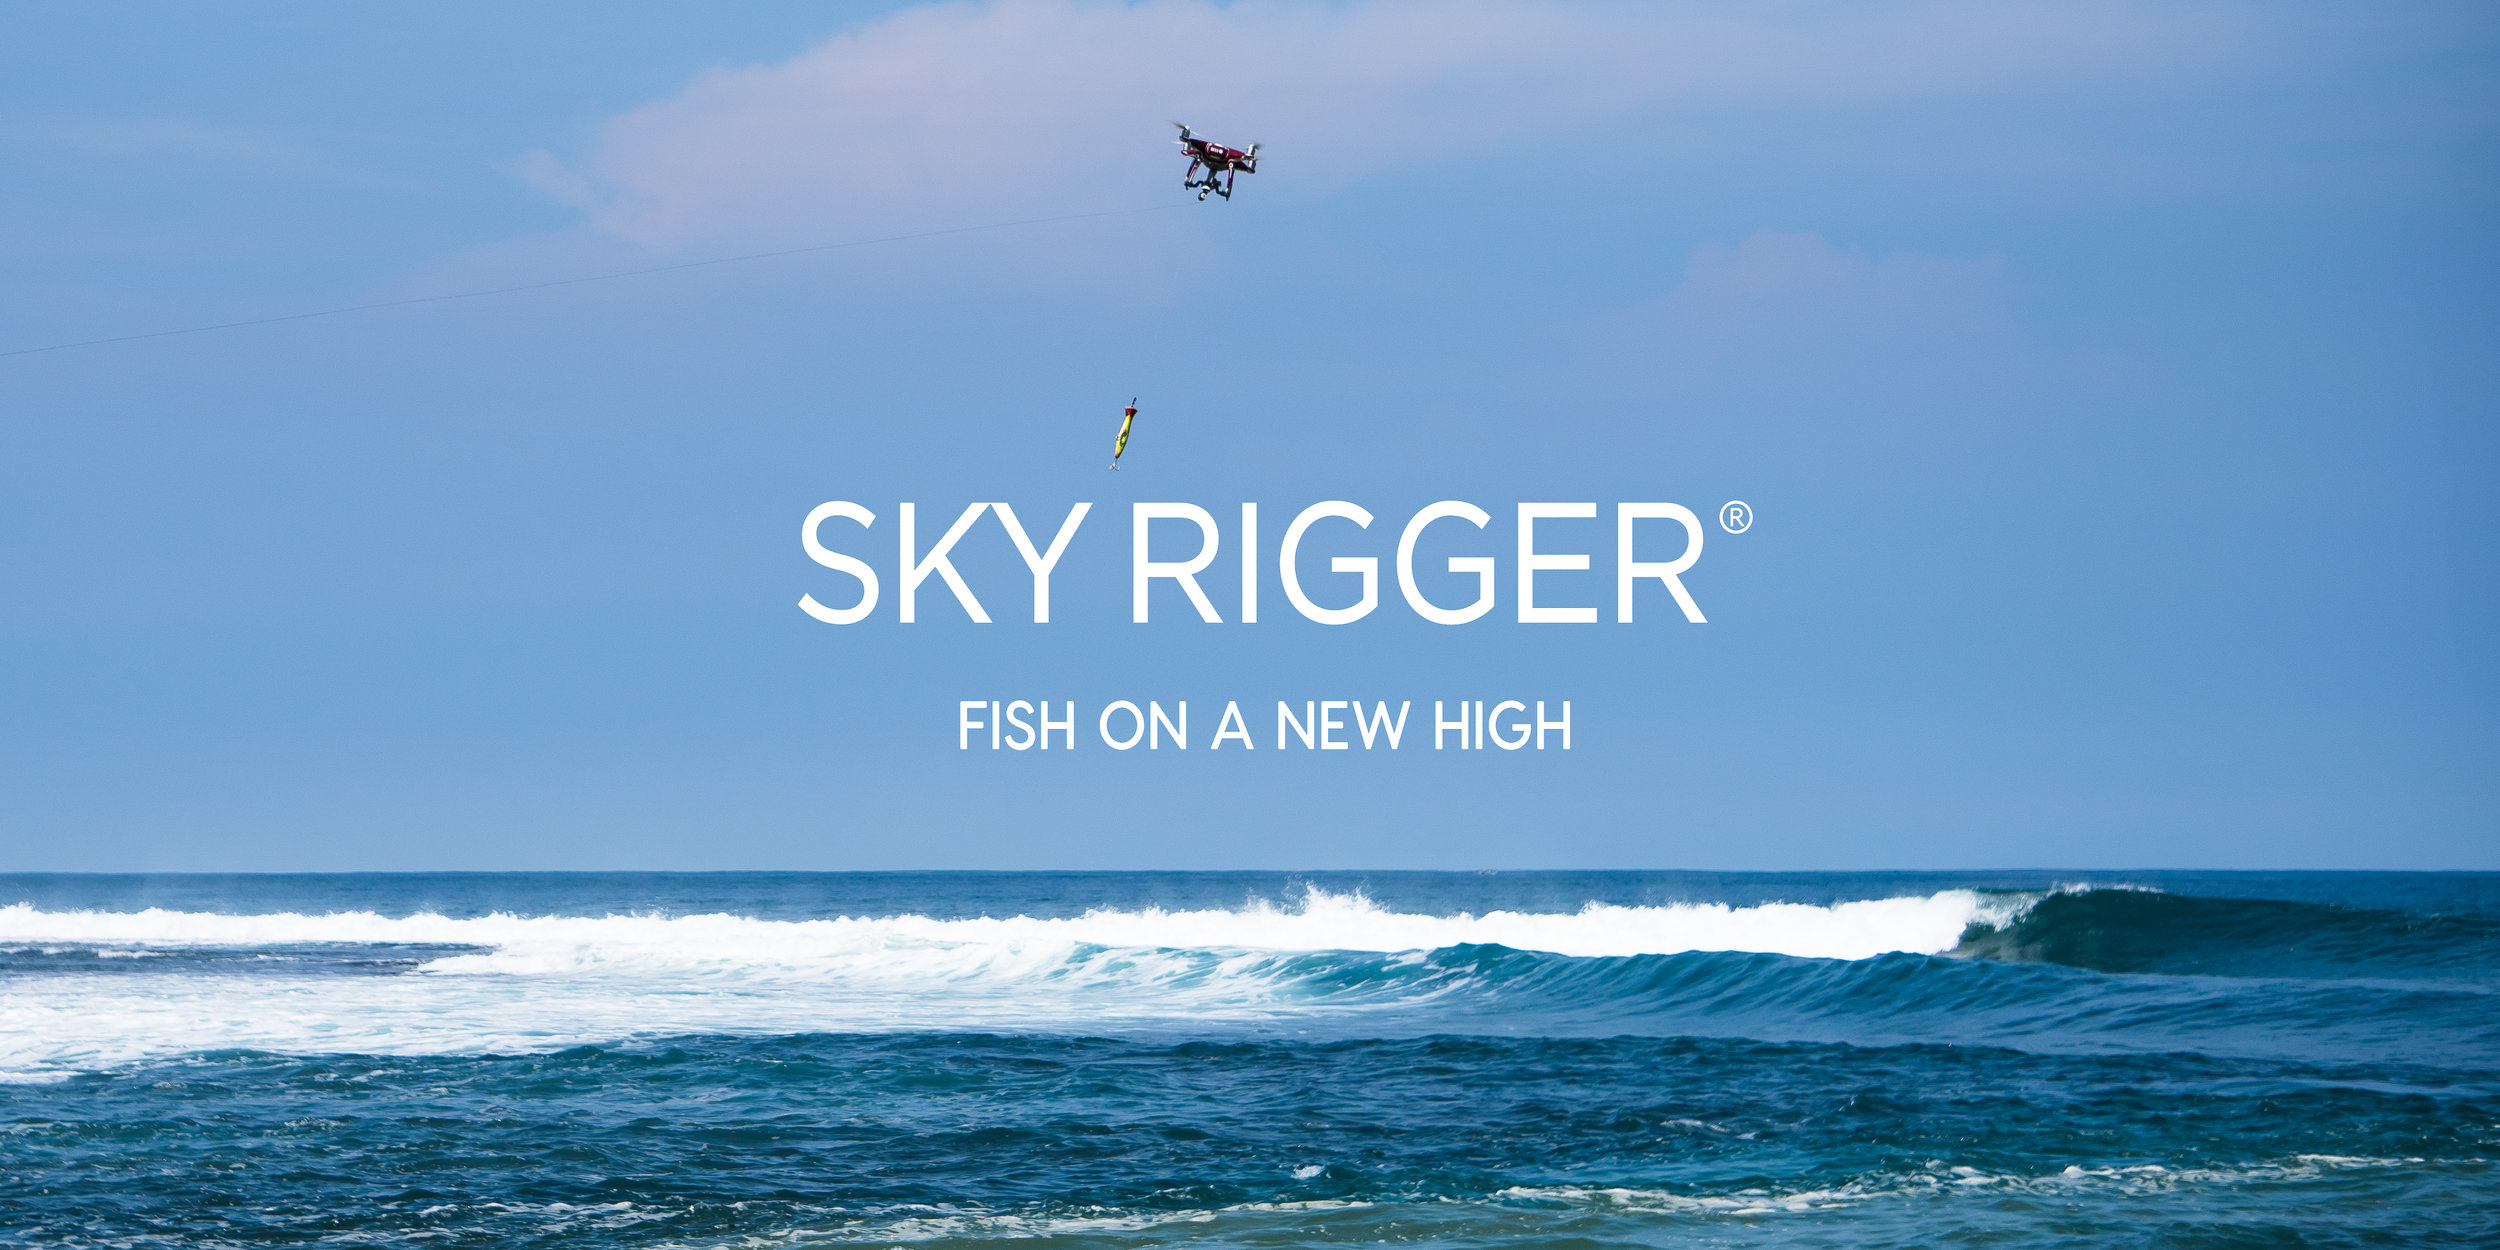 WE TRAVEL WITH A SKYRIGGER FOR THOSE TIMES WHEN WE CAN SEE THE FISH BUT JUST CAN'T REACH THEM!!